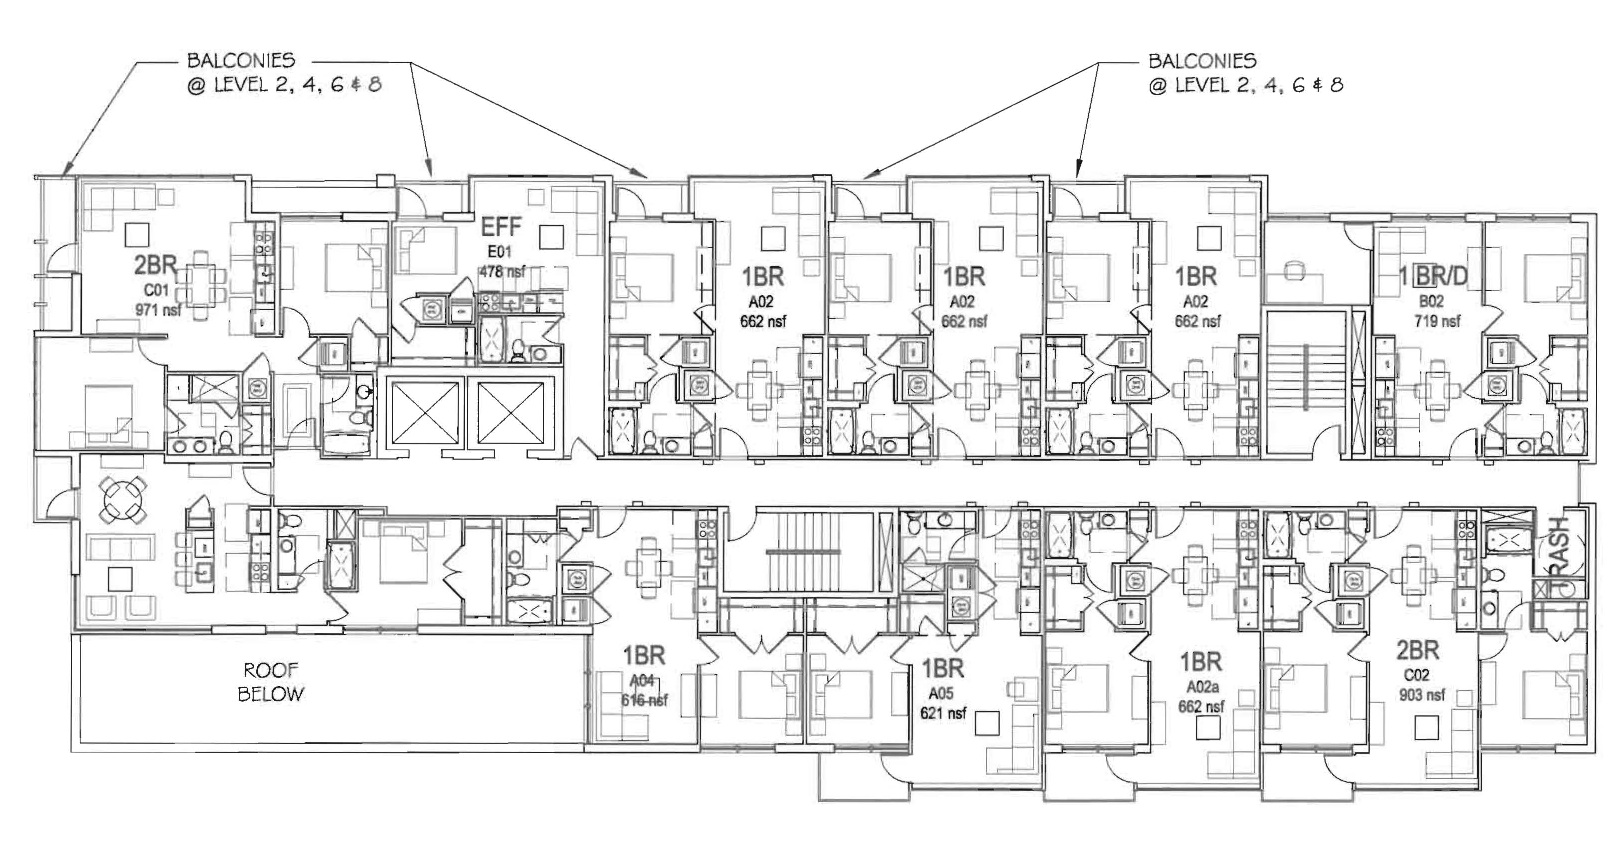 Revised plans for apartment building at 15th v Apartment building construction plans